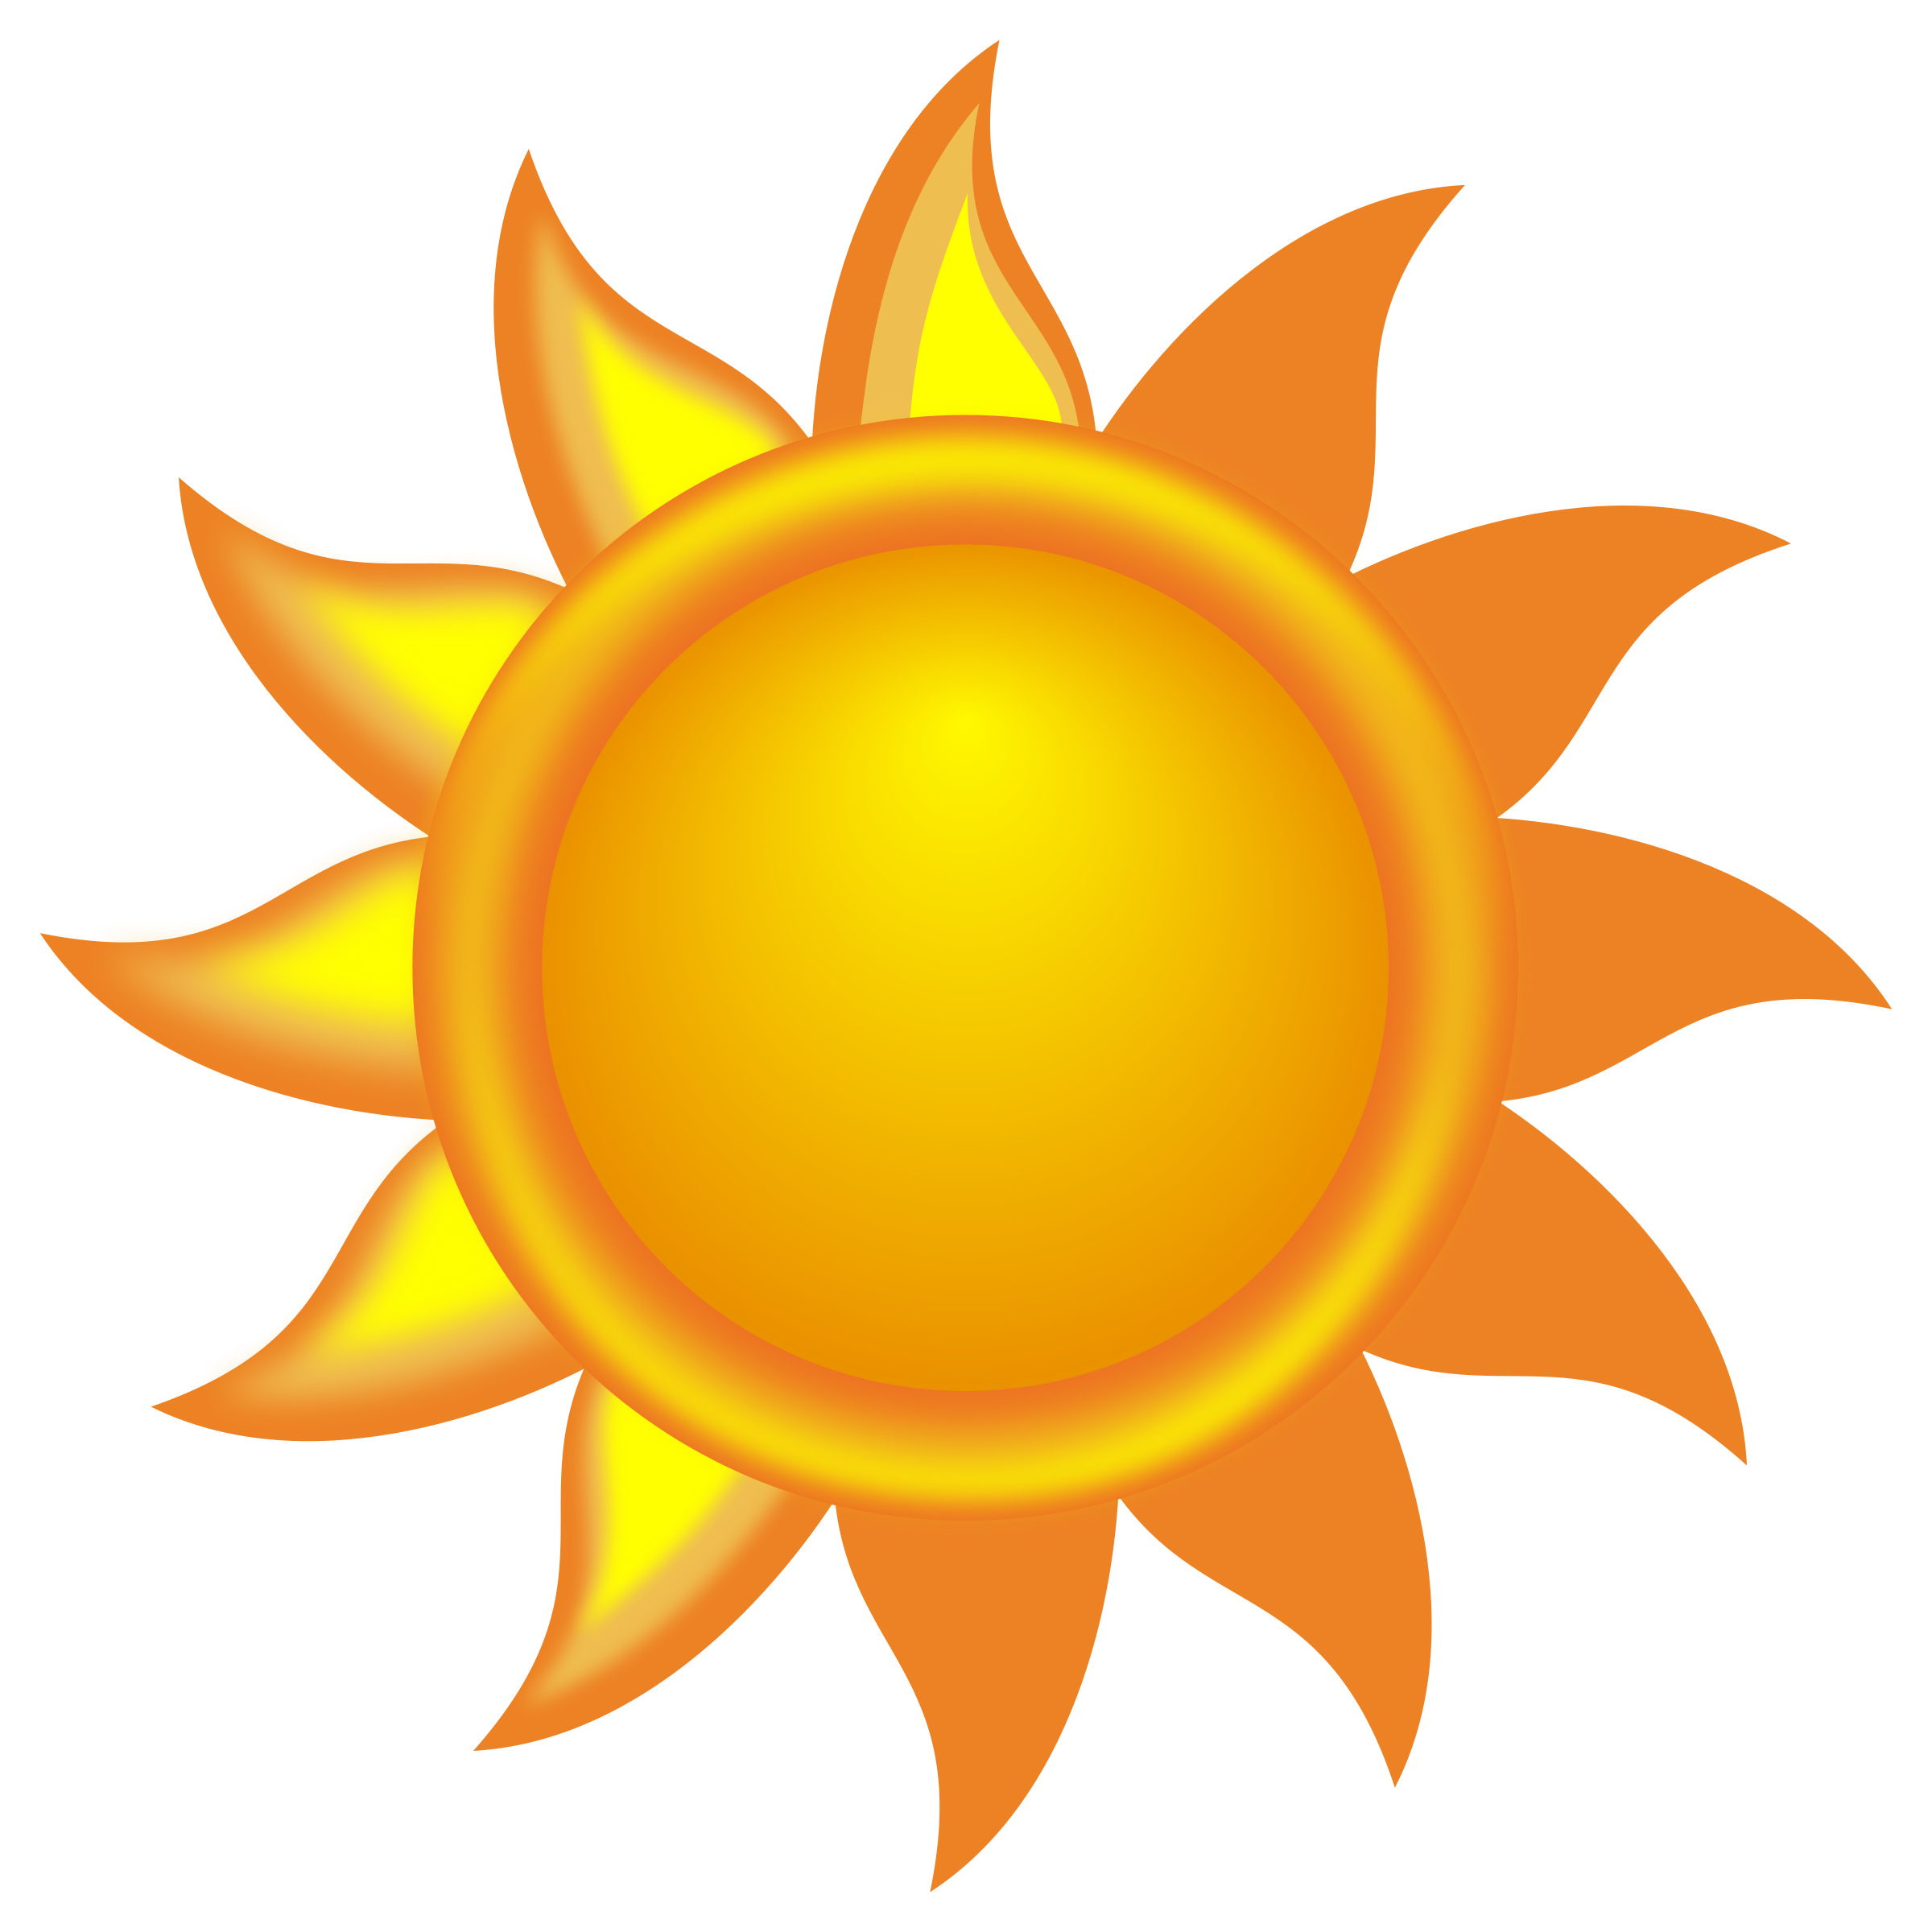 Sun PNG Clear Background Transparent Sun Clear Background